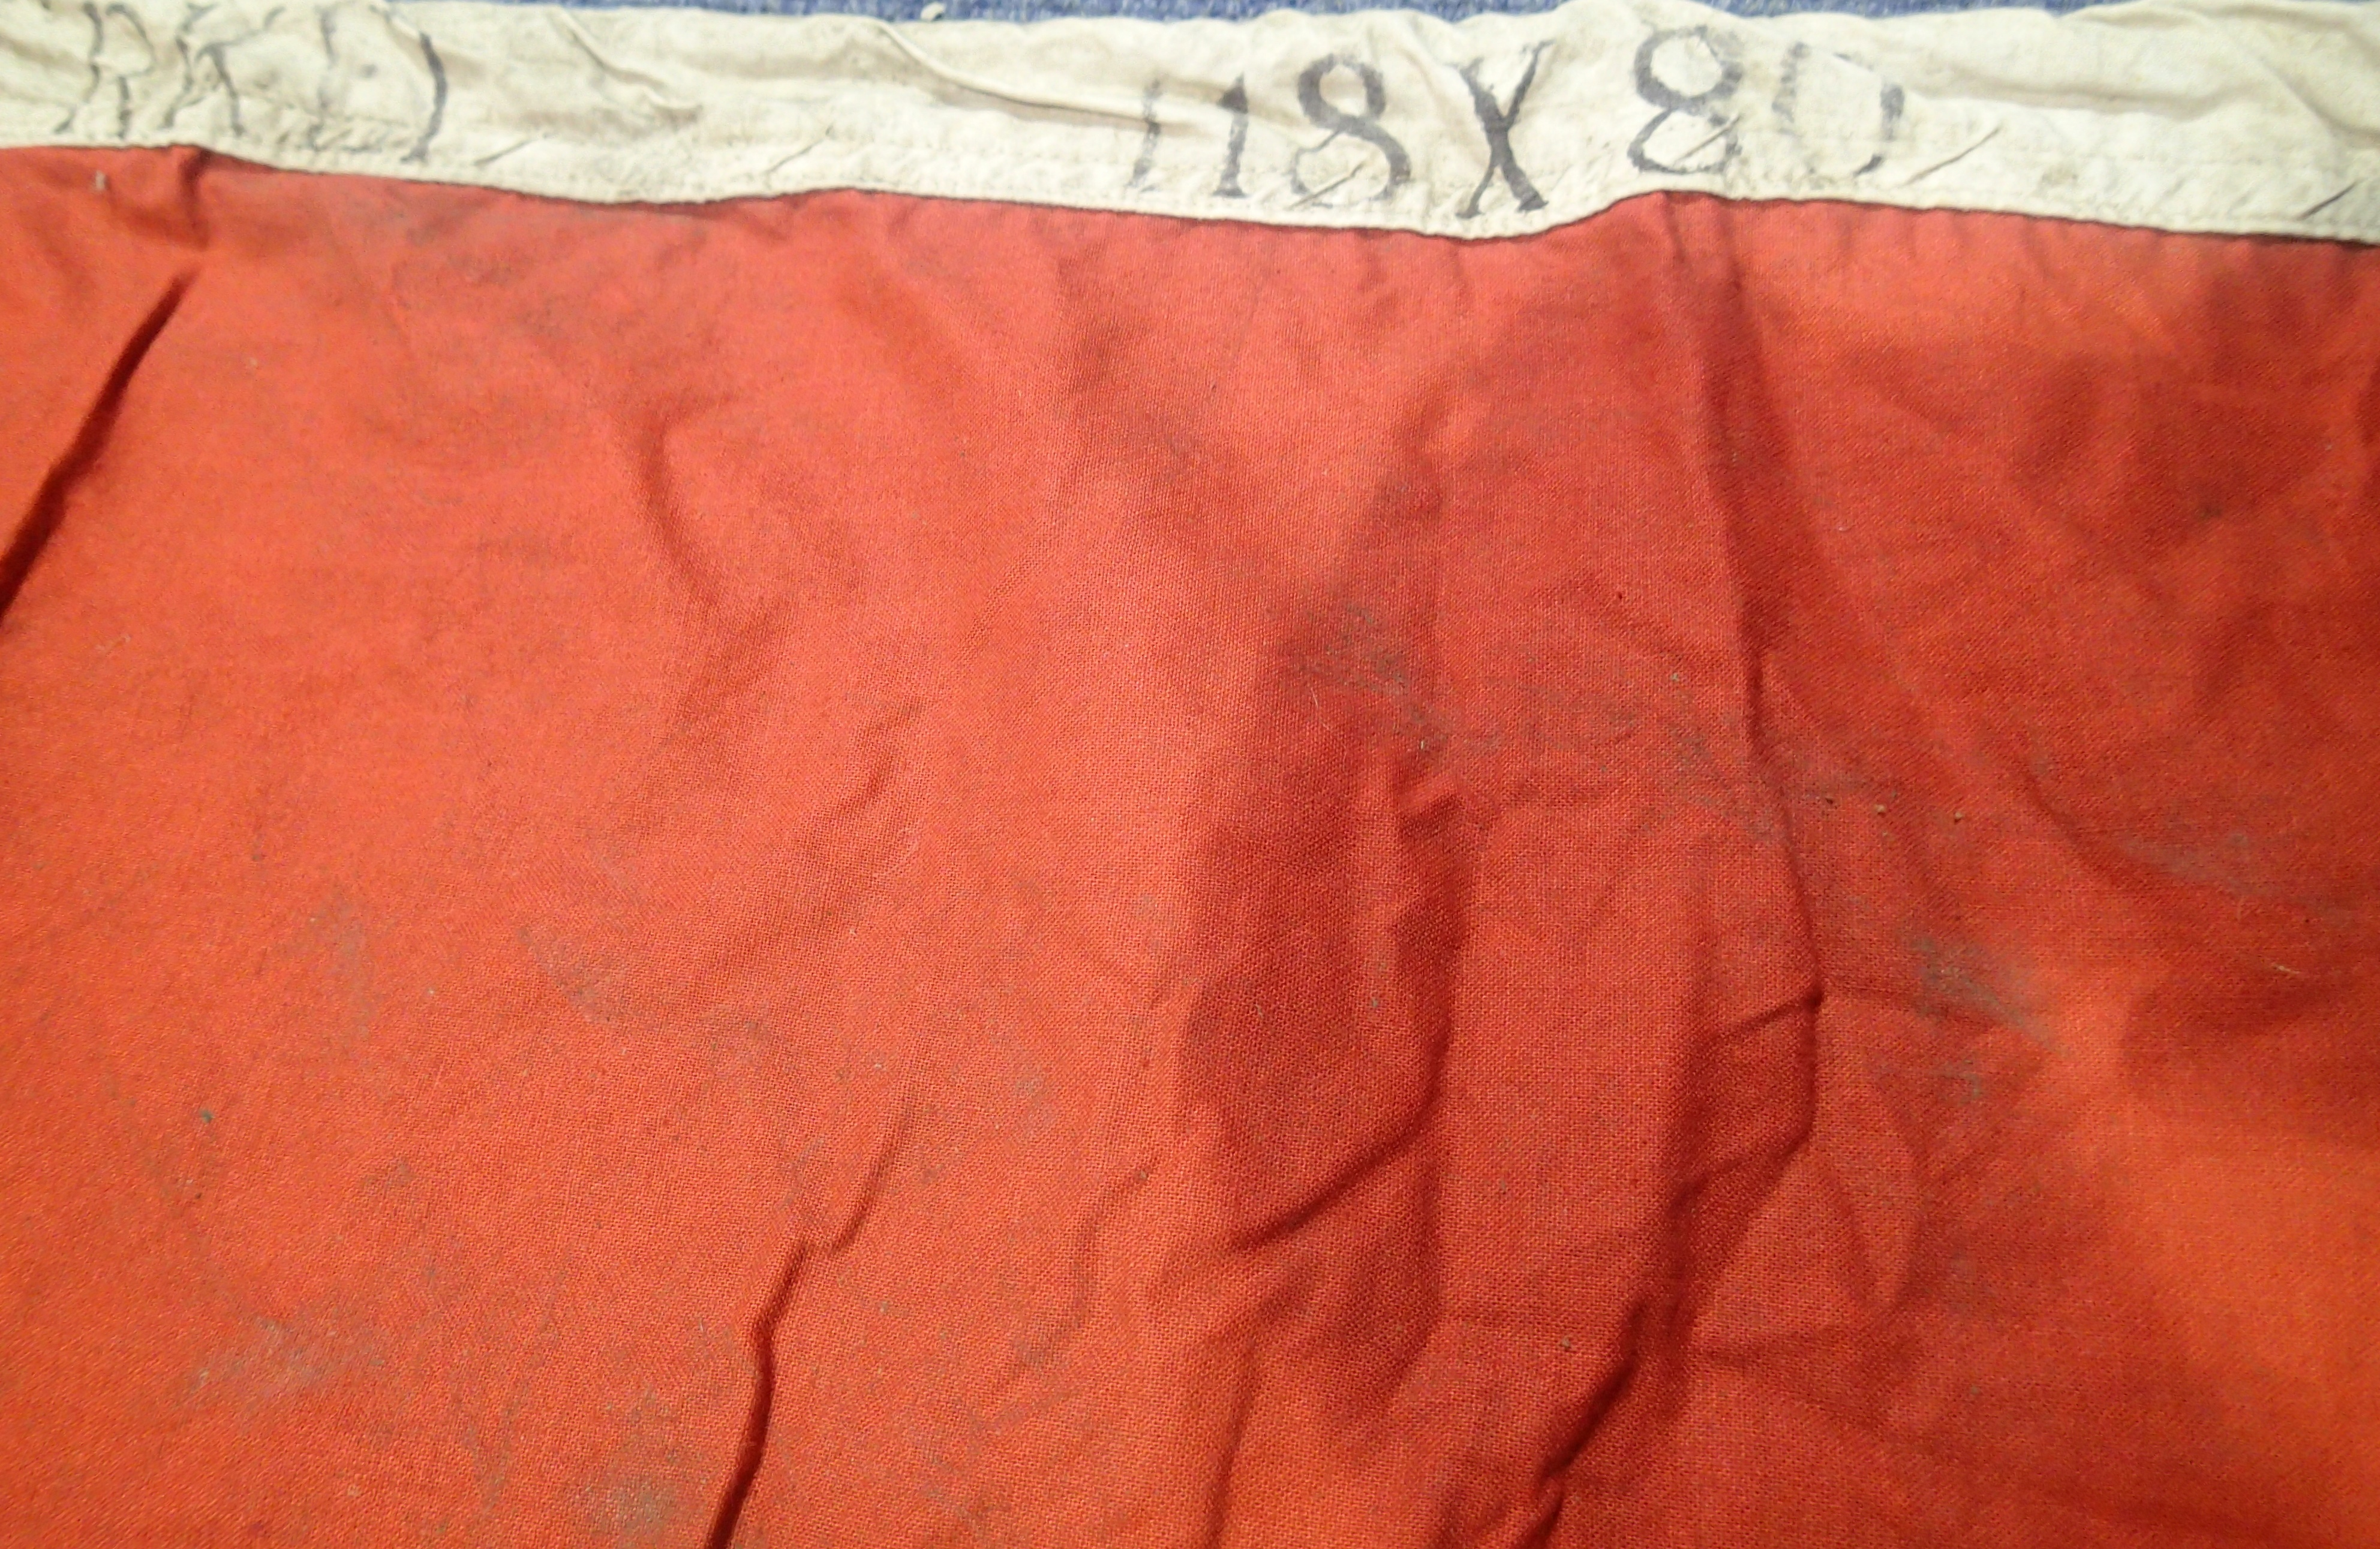 Lot 3006 - WW1 Style Ottoman (Turkish) Flag 118 x 80 cm. P&P Group 2 (£18+VAT for the first lot and £3+VAT